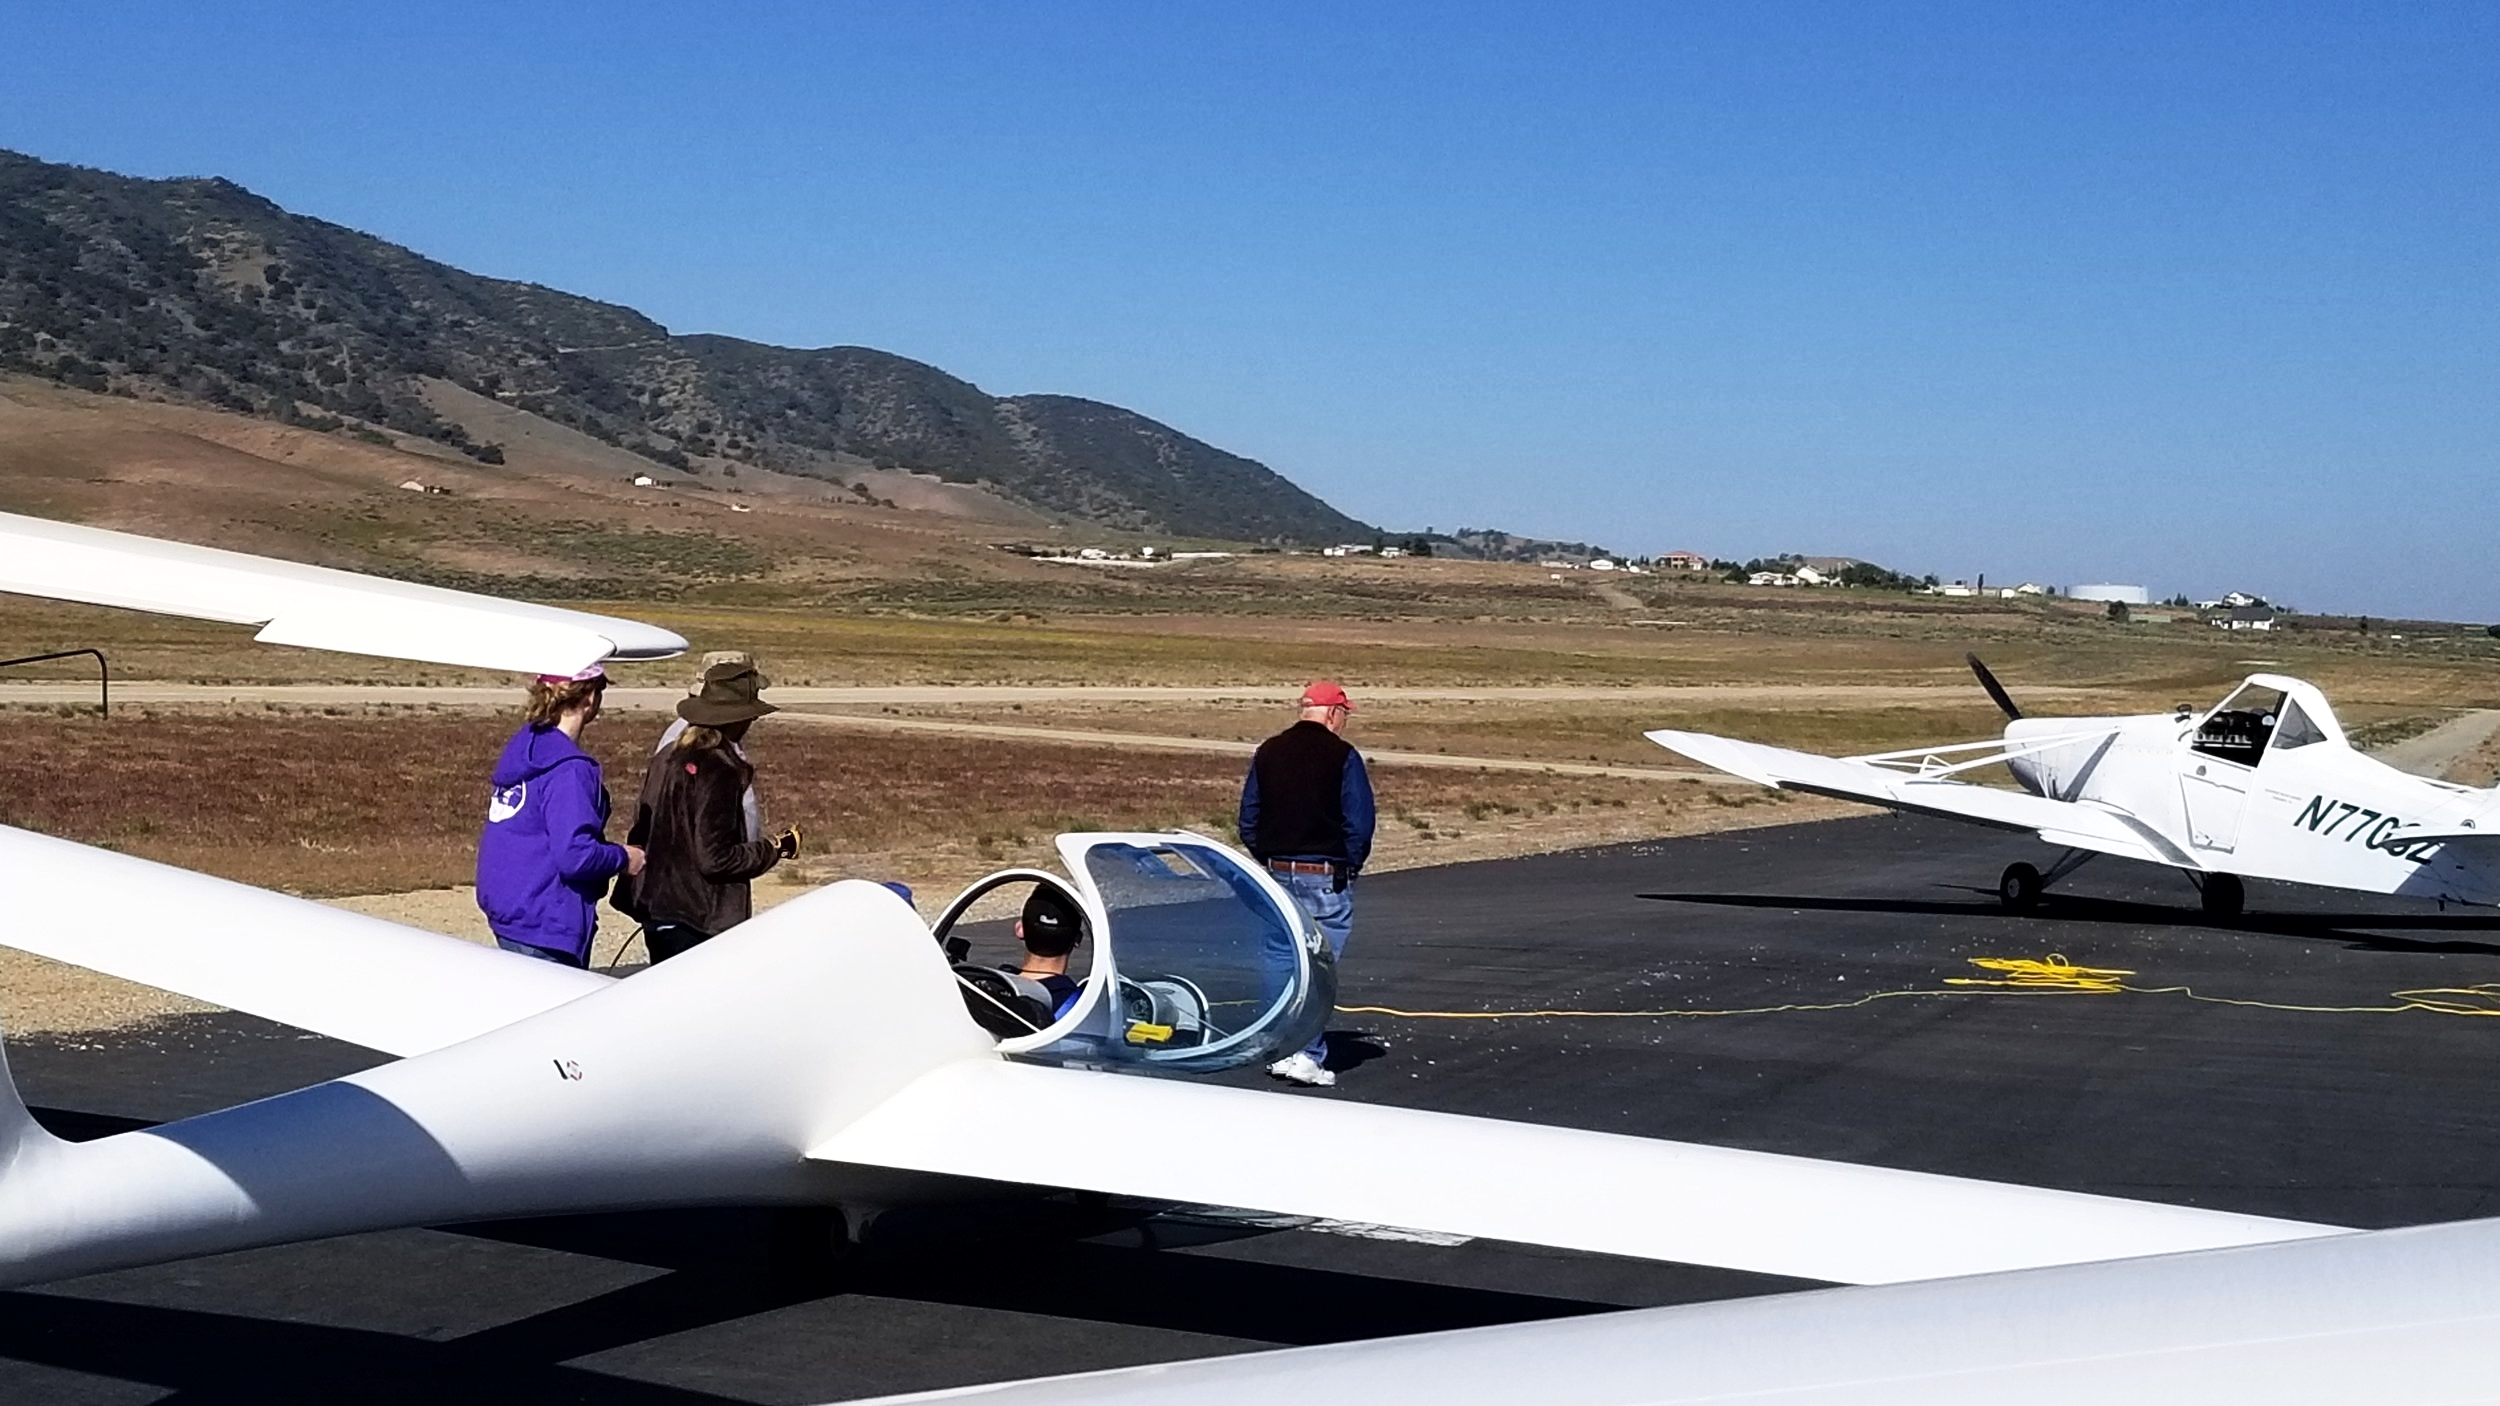 One of the Four Gliders We Flew in Tehachapi, California